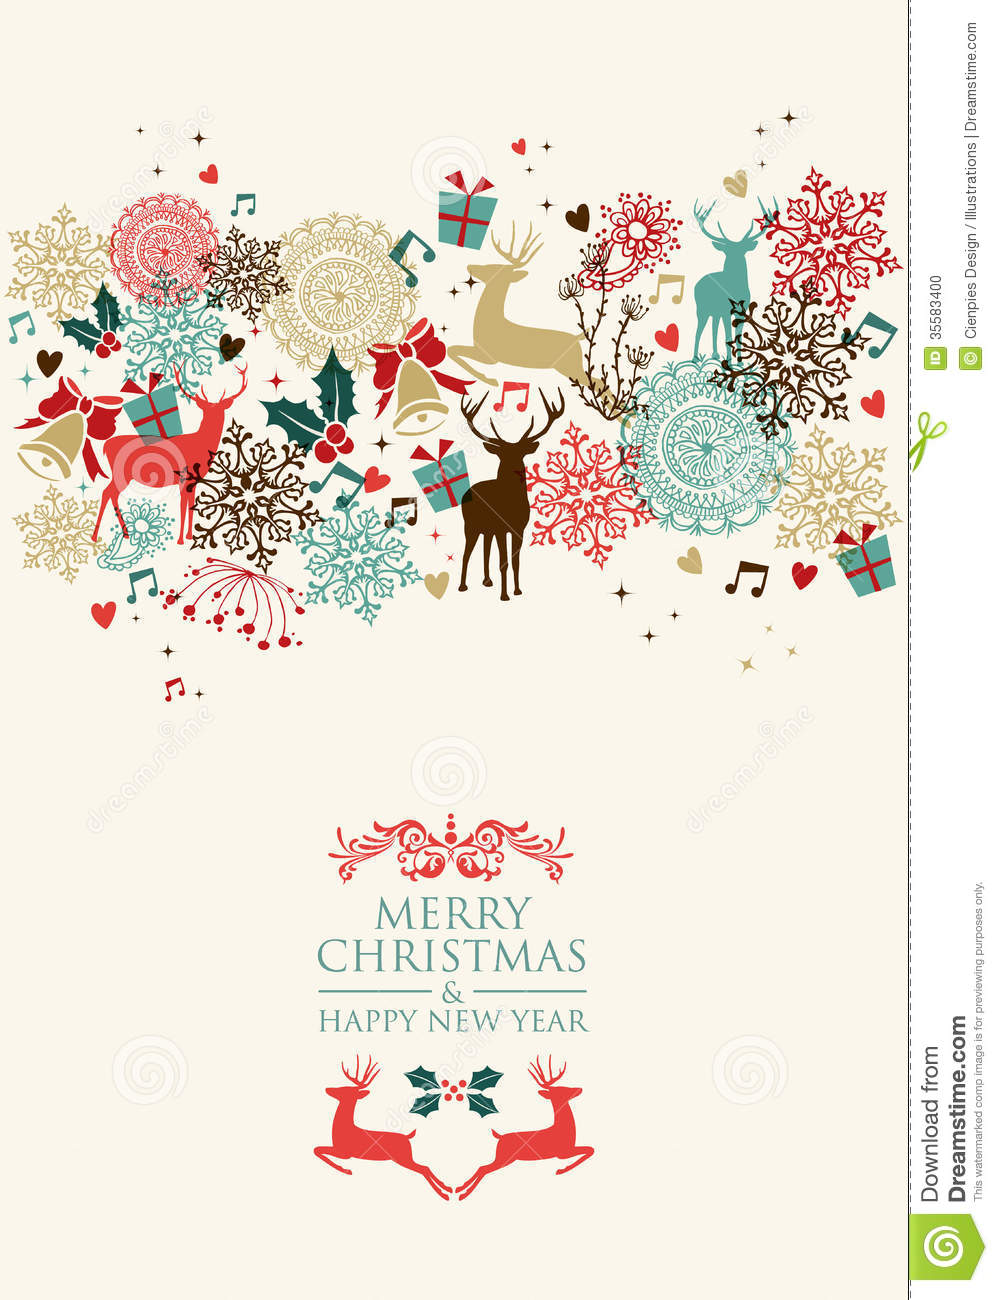 merry christmas postal card transparency